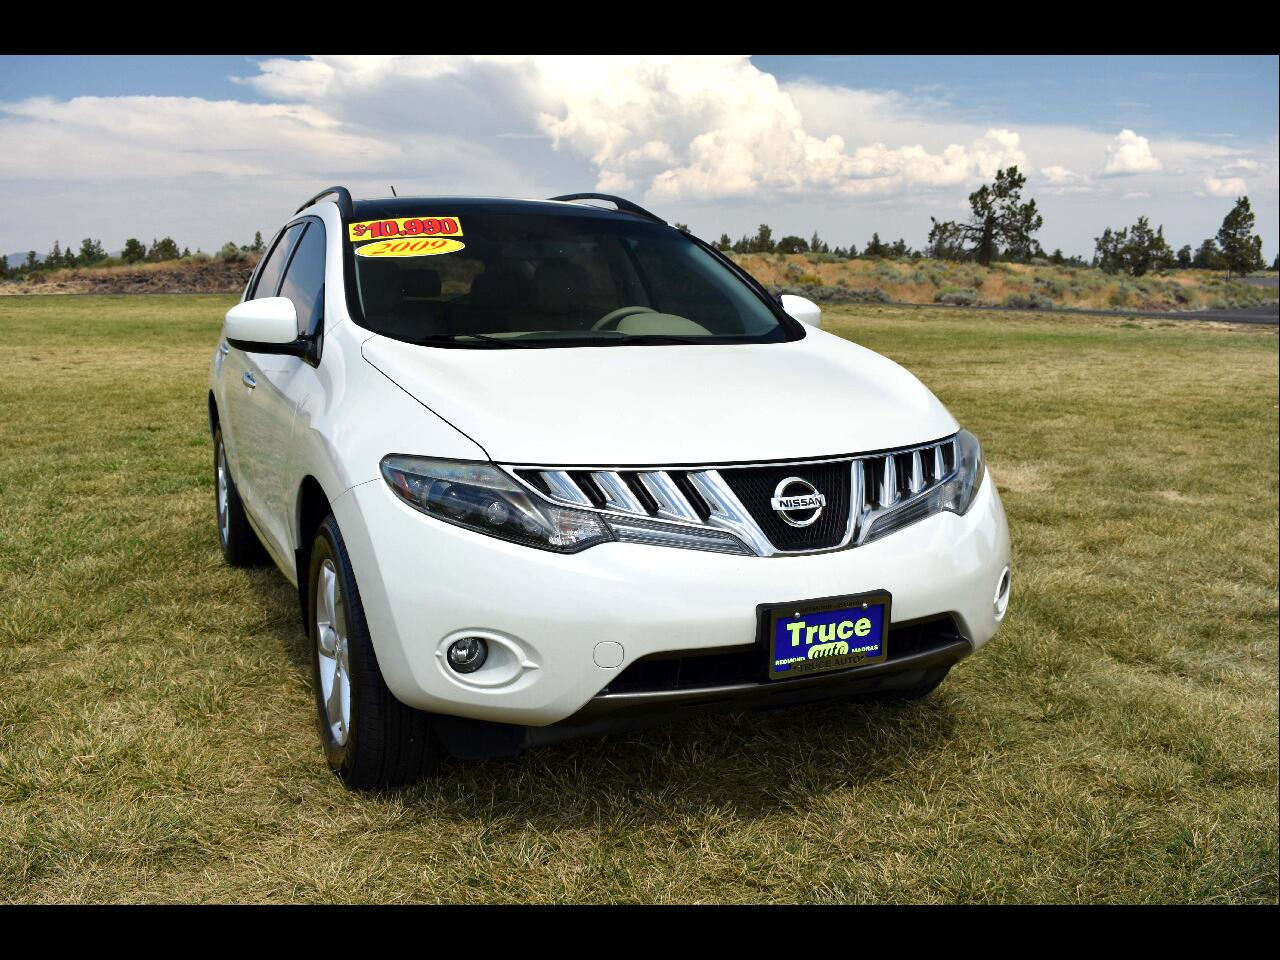 2009 Nissan Murano AWD 4dr SL**LOW MILES**